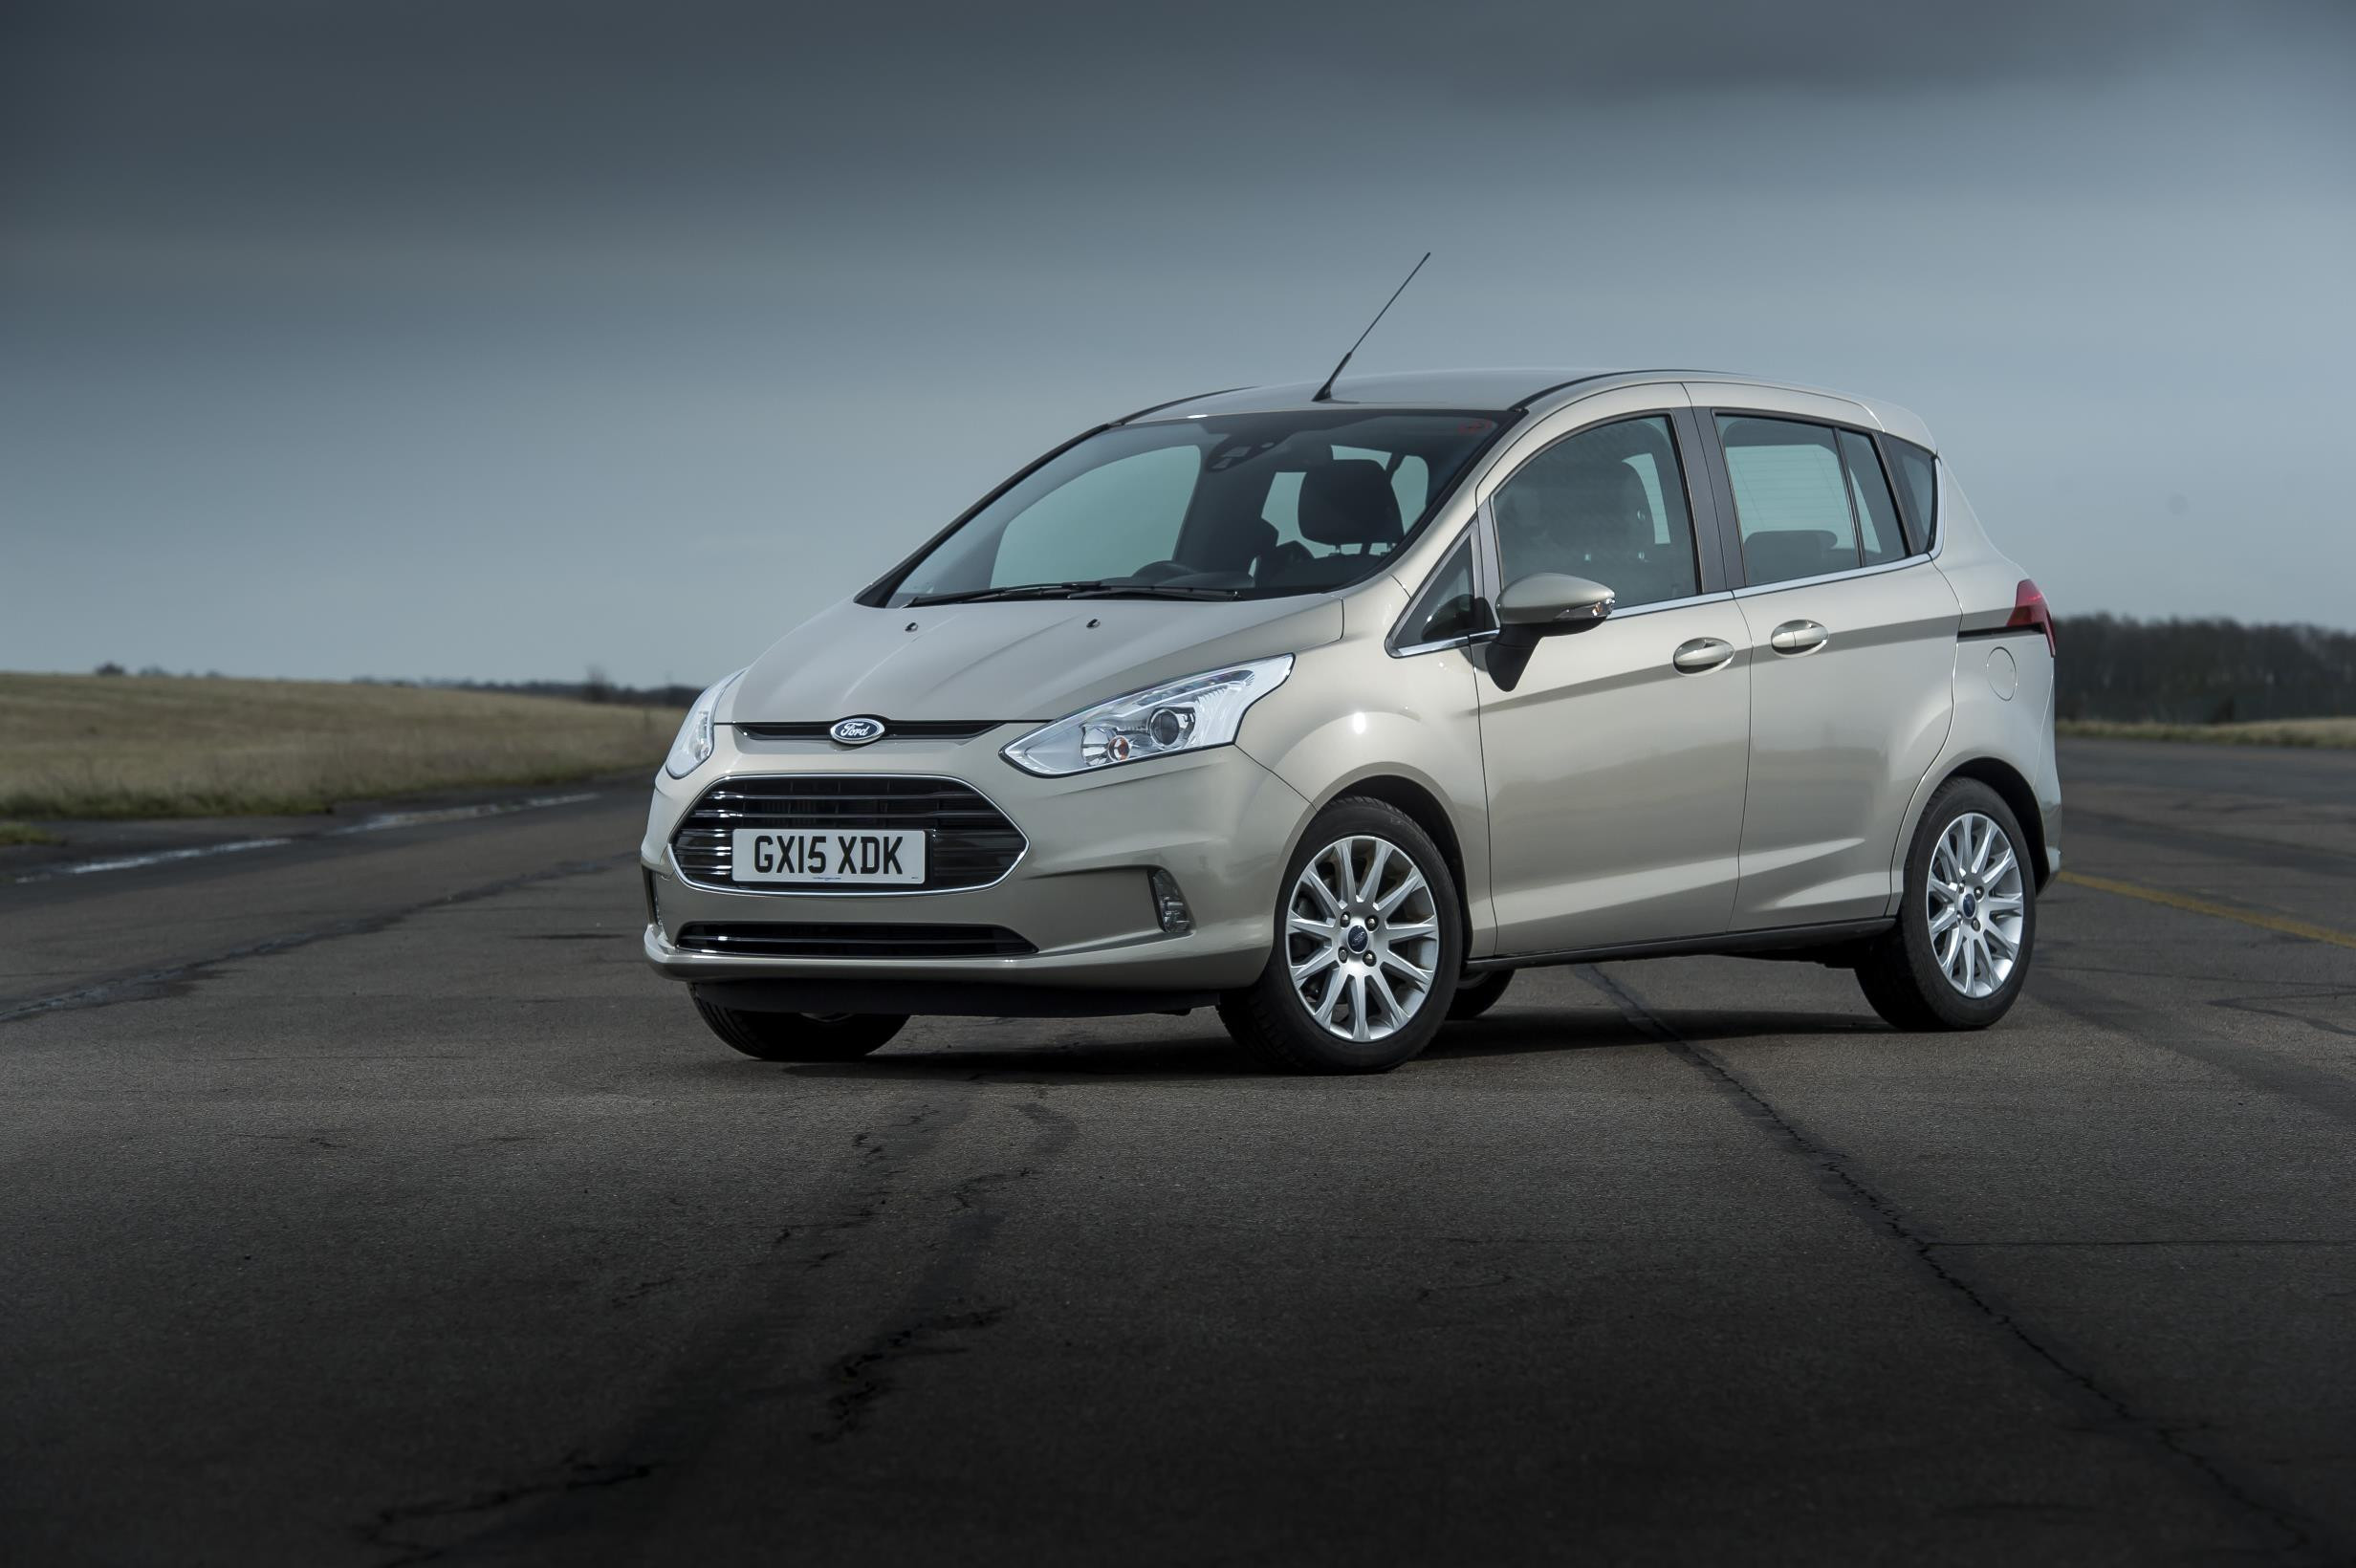 Light grey Ford B-Max parked facing three-quarters left on airport runway.